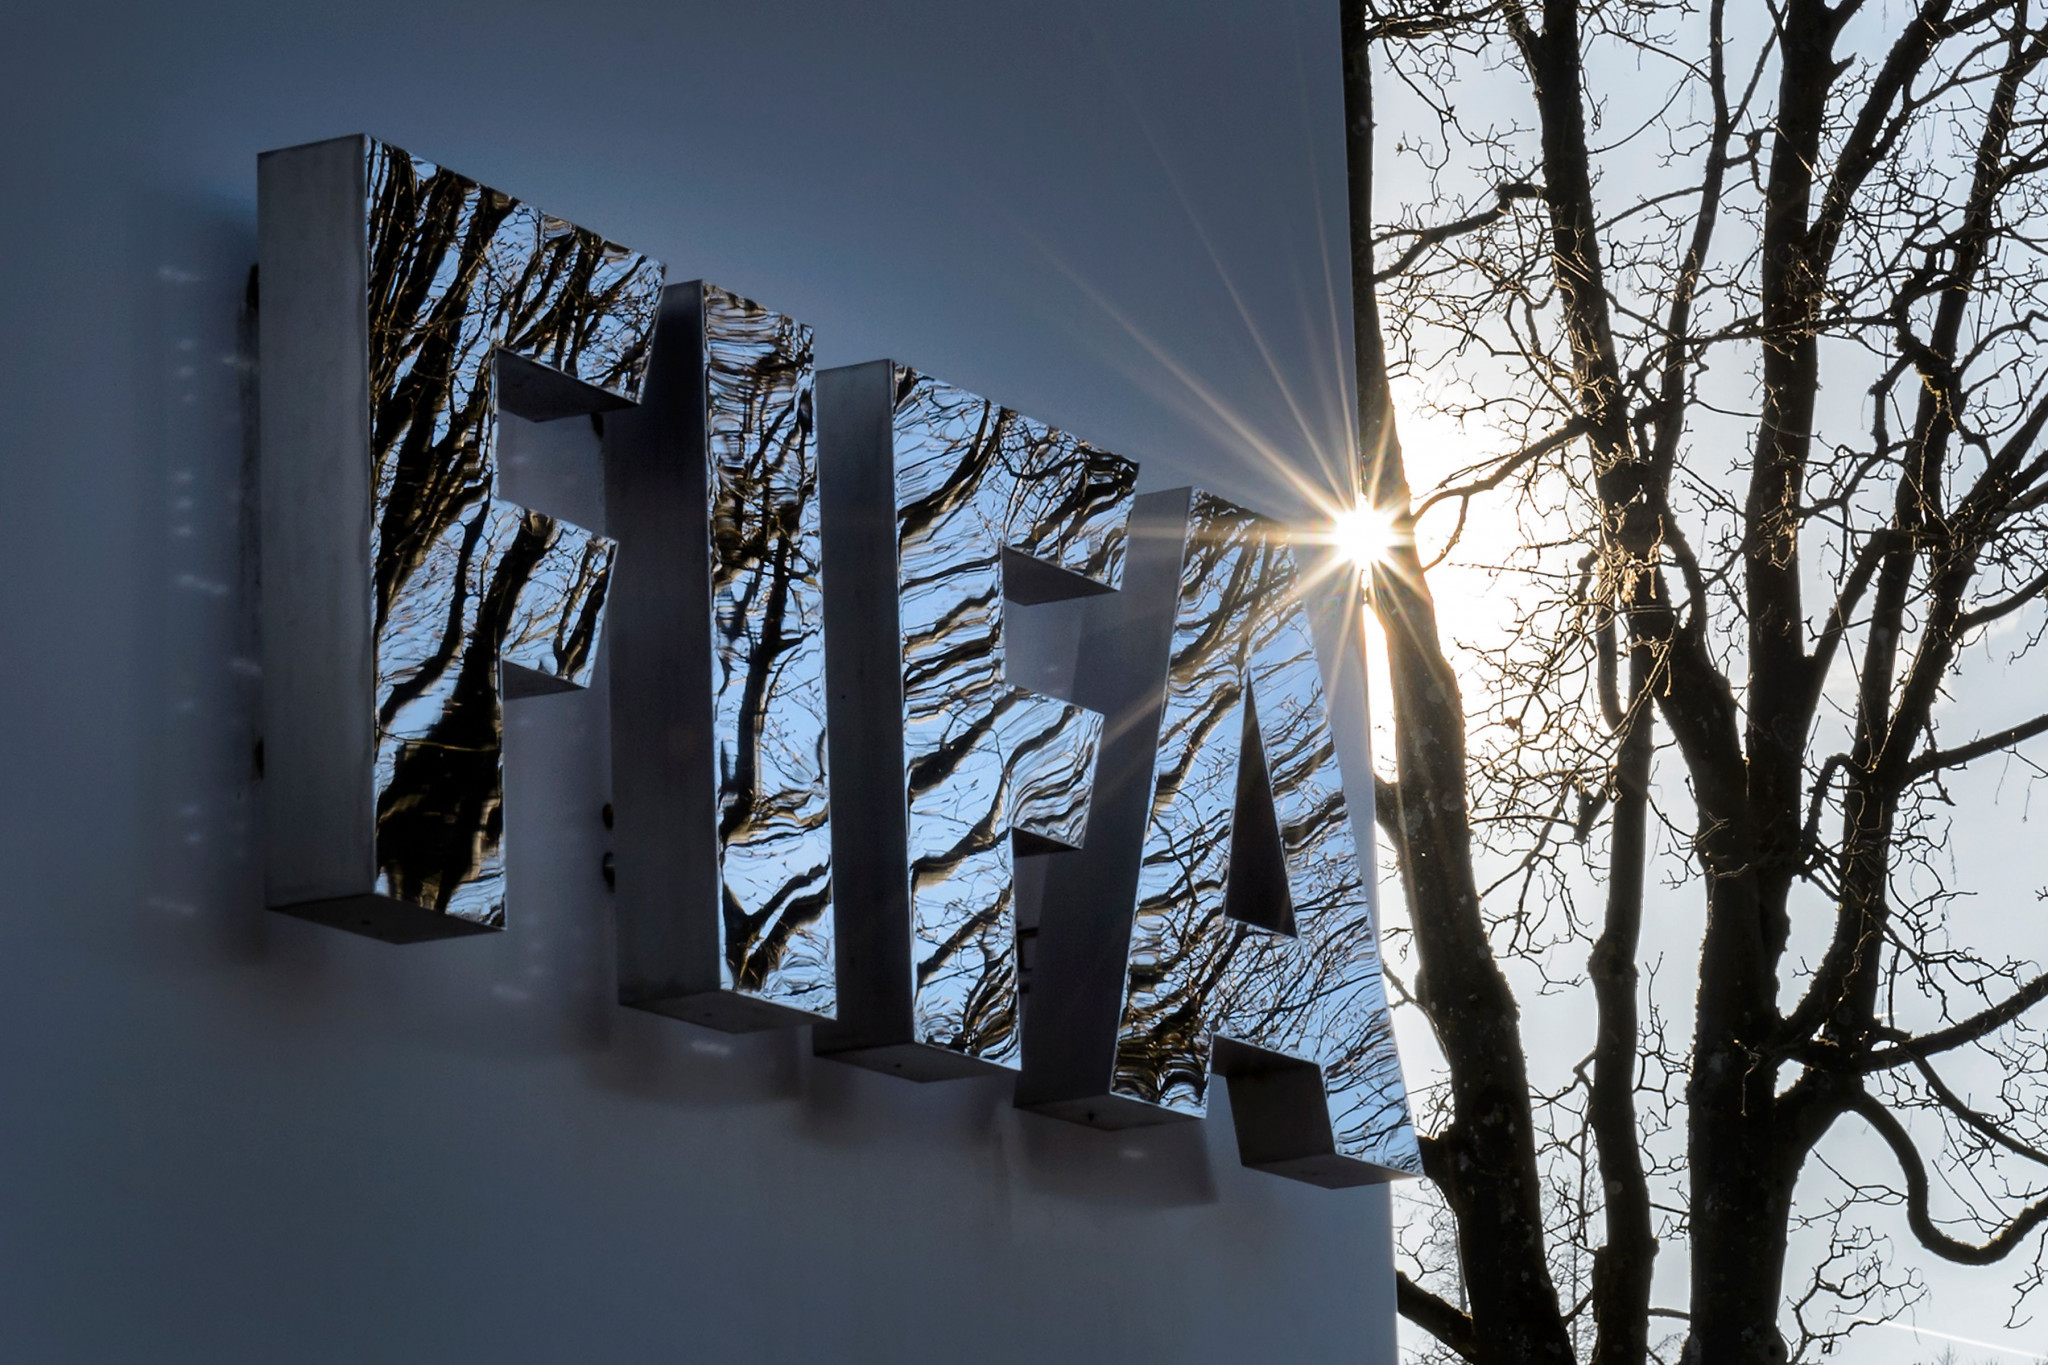 FIFA said the former SLFA official had been sanctioned as part of an investigation into known match fixer Wilson Raj Perumal ©Getty Images